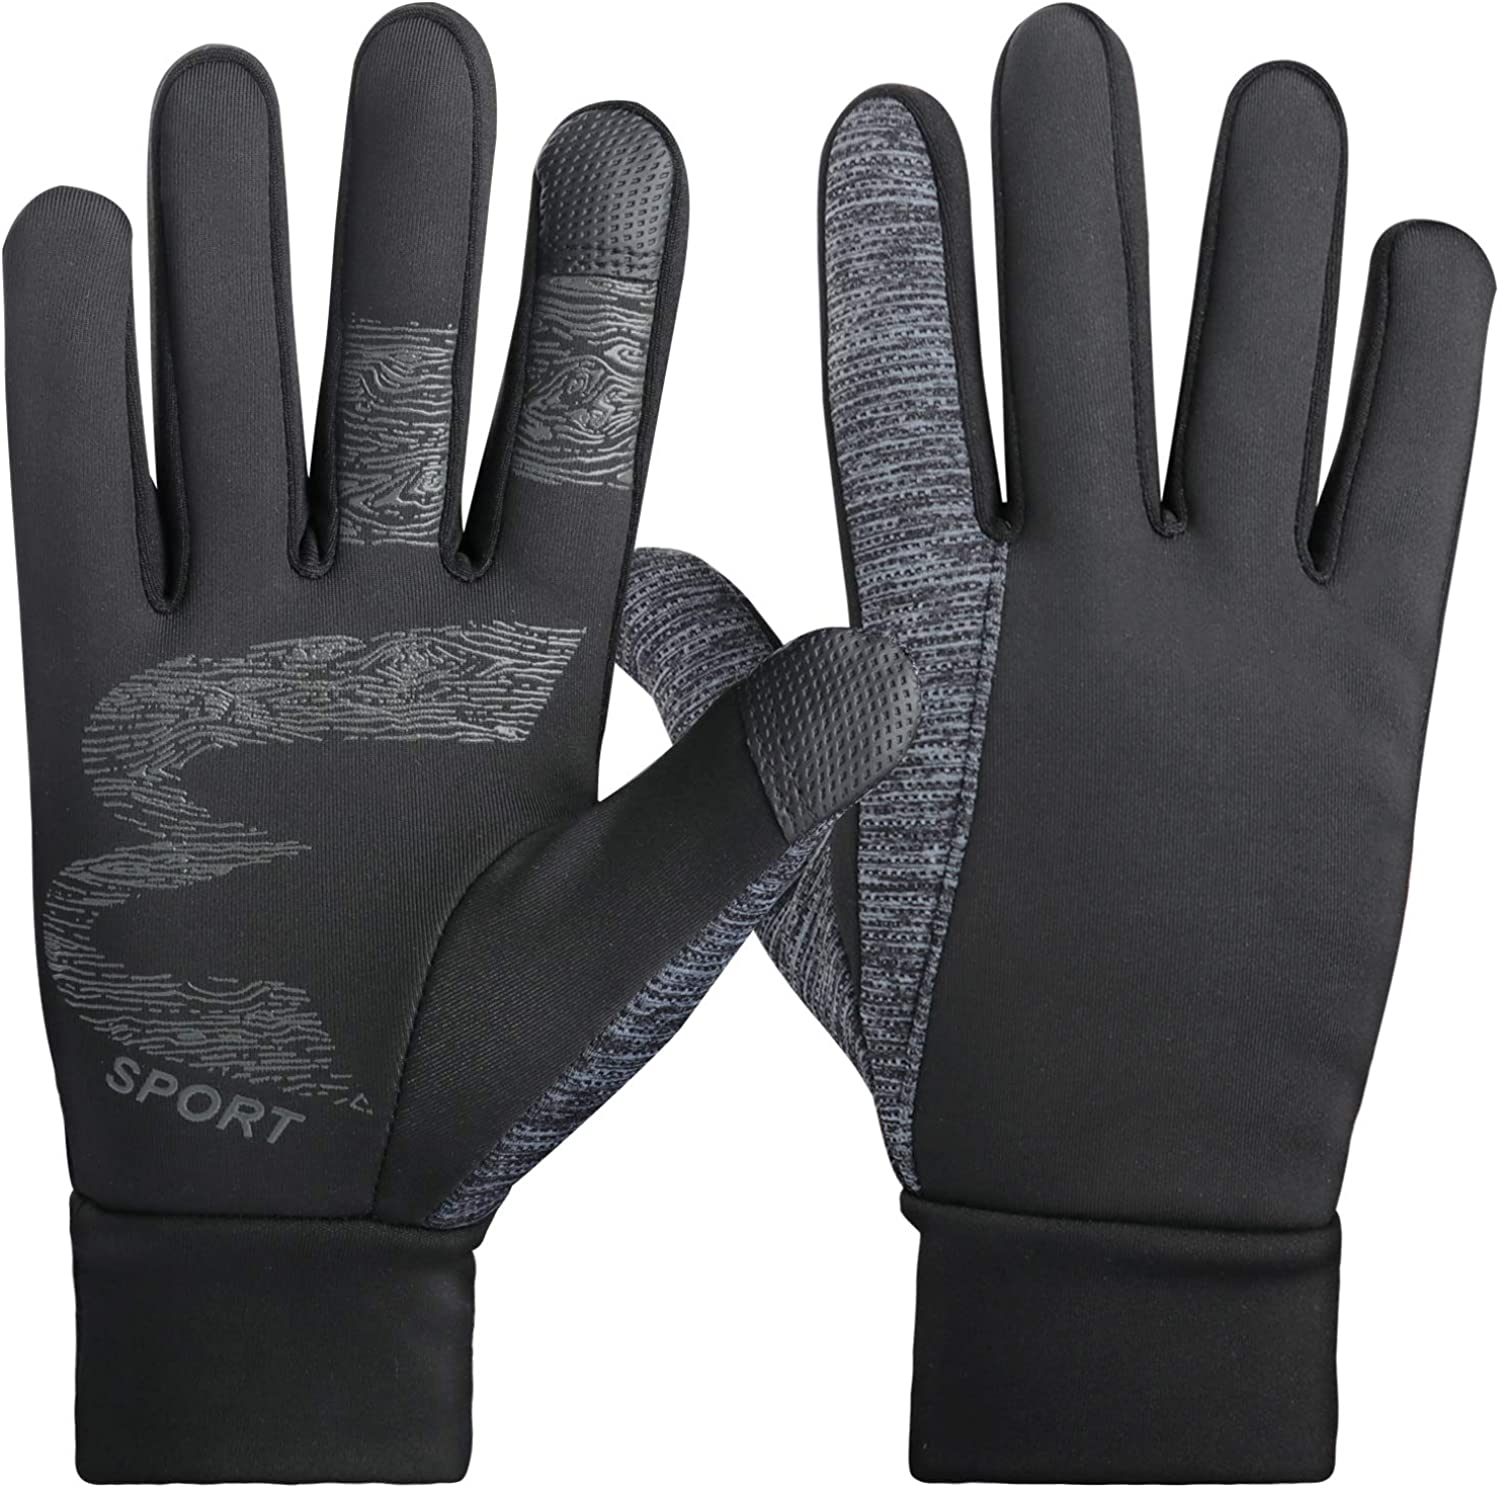 Winter Gloves for Men Women Touchscreen Windproof for Running Cyling Training Workout